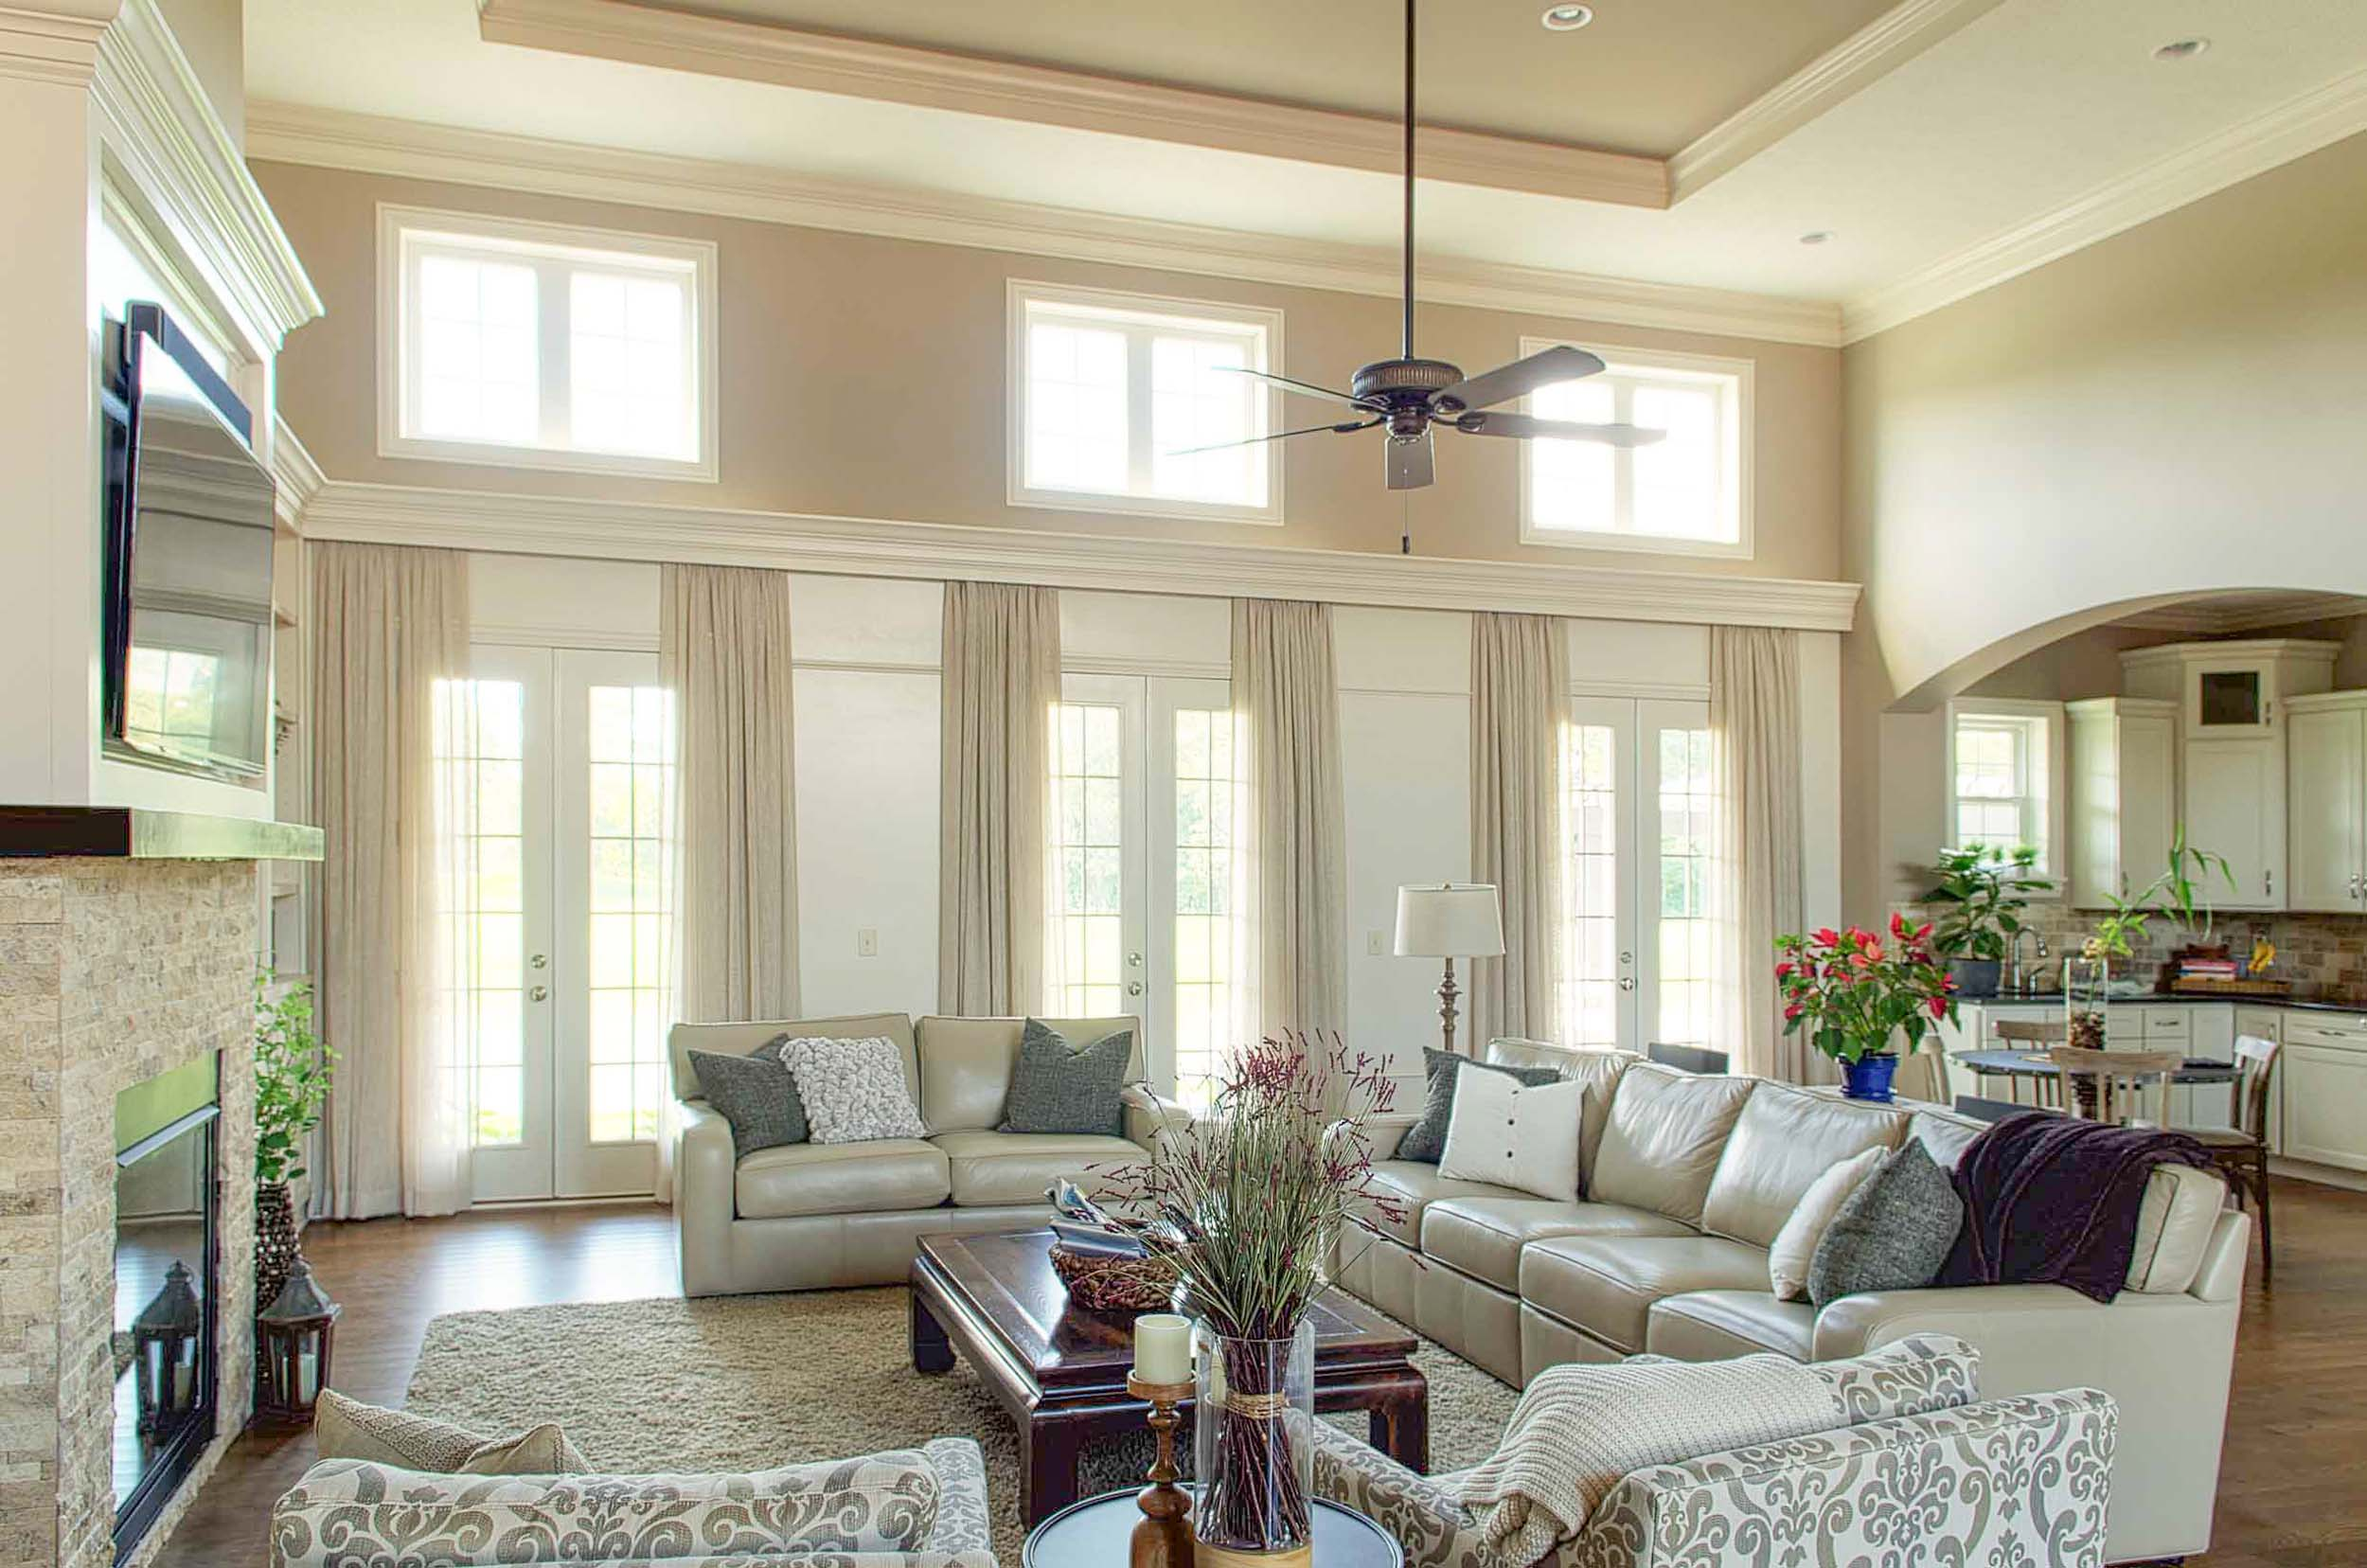 Elegant living room with large window and high vaulted ceiling